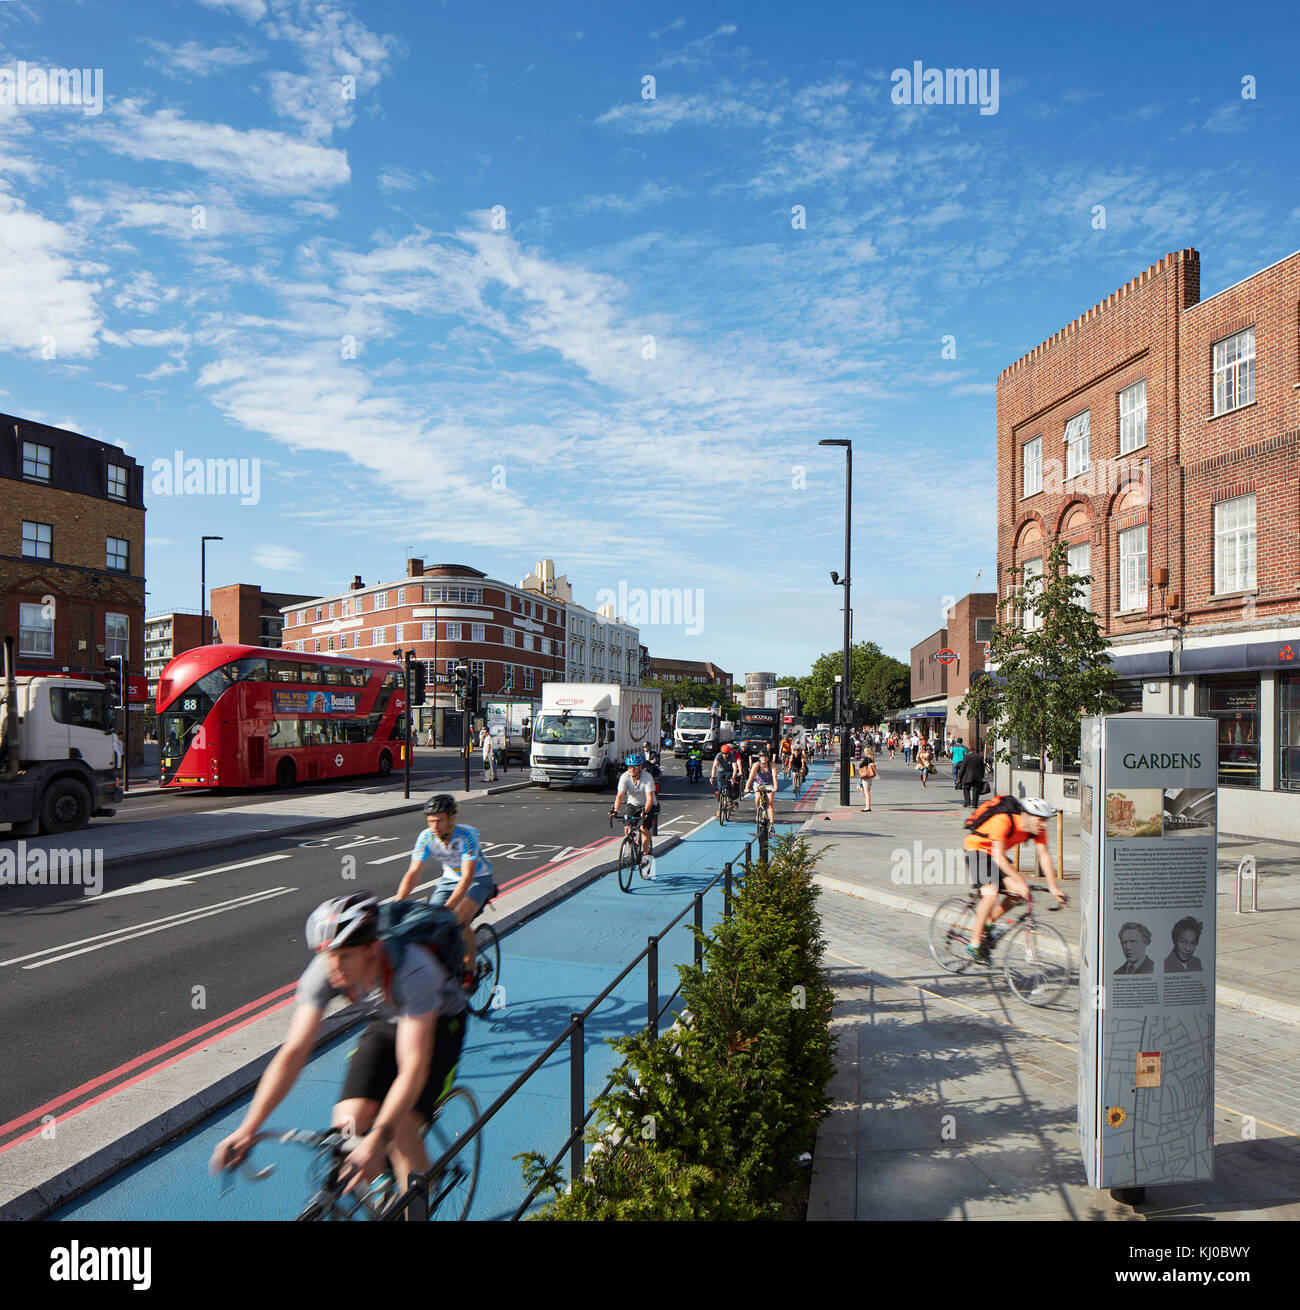 Intersection with new bicycle lane and morning traffic. Stockwell Framework Masterplan, London, United Kingdom. - Stock Image